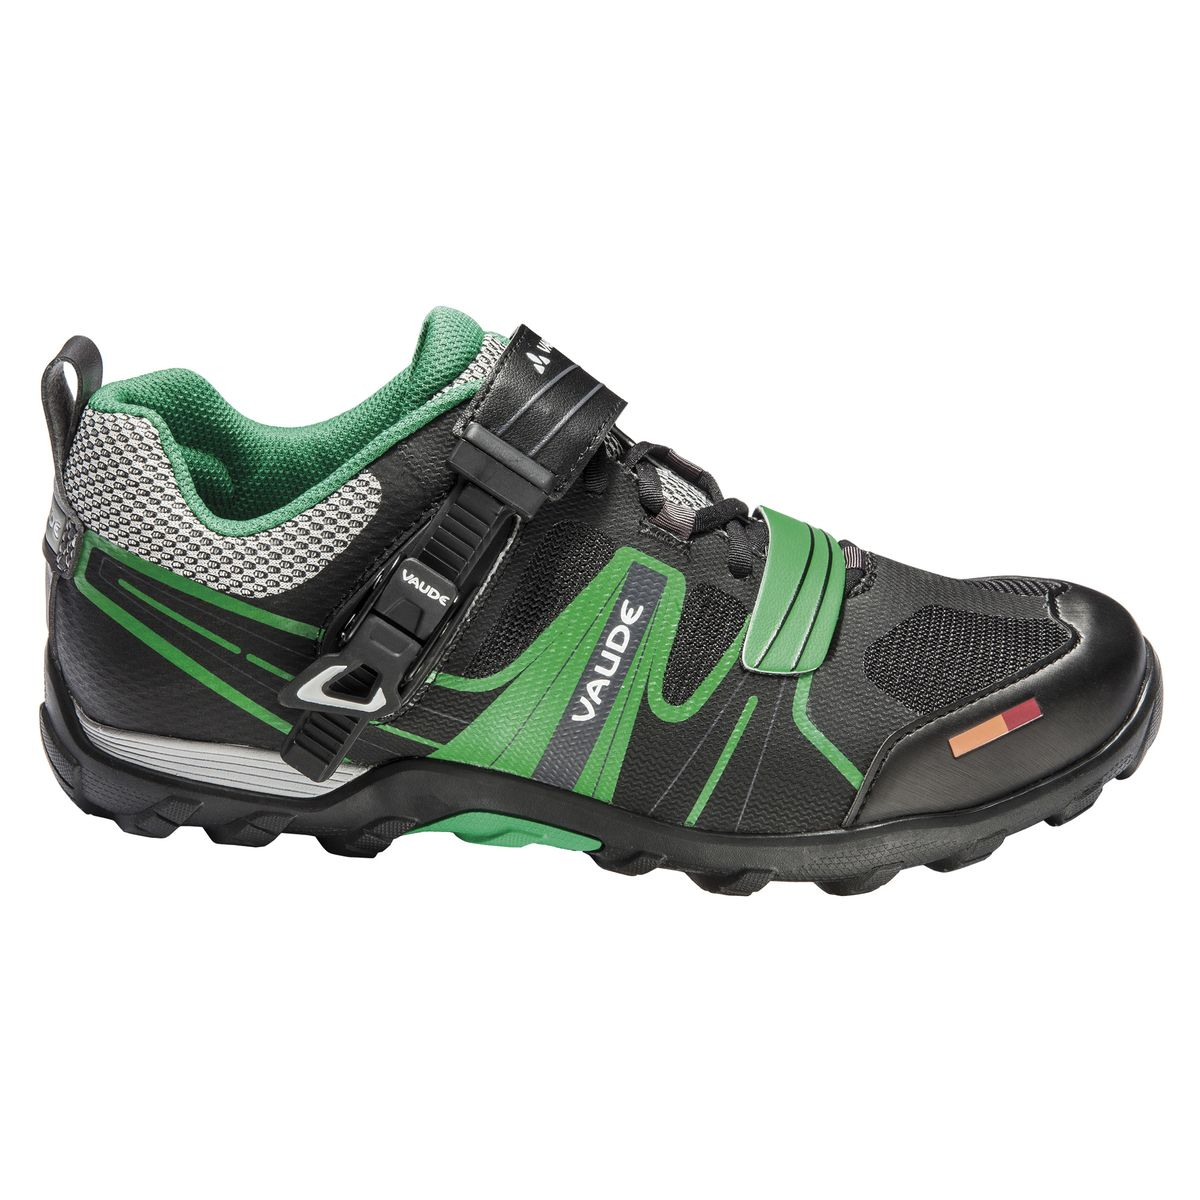 TARON LOW AM MTB shoes